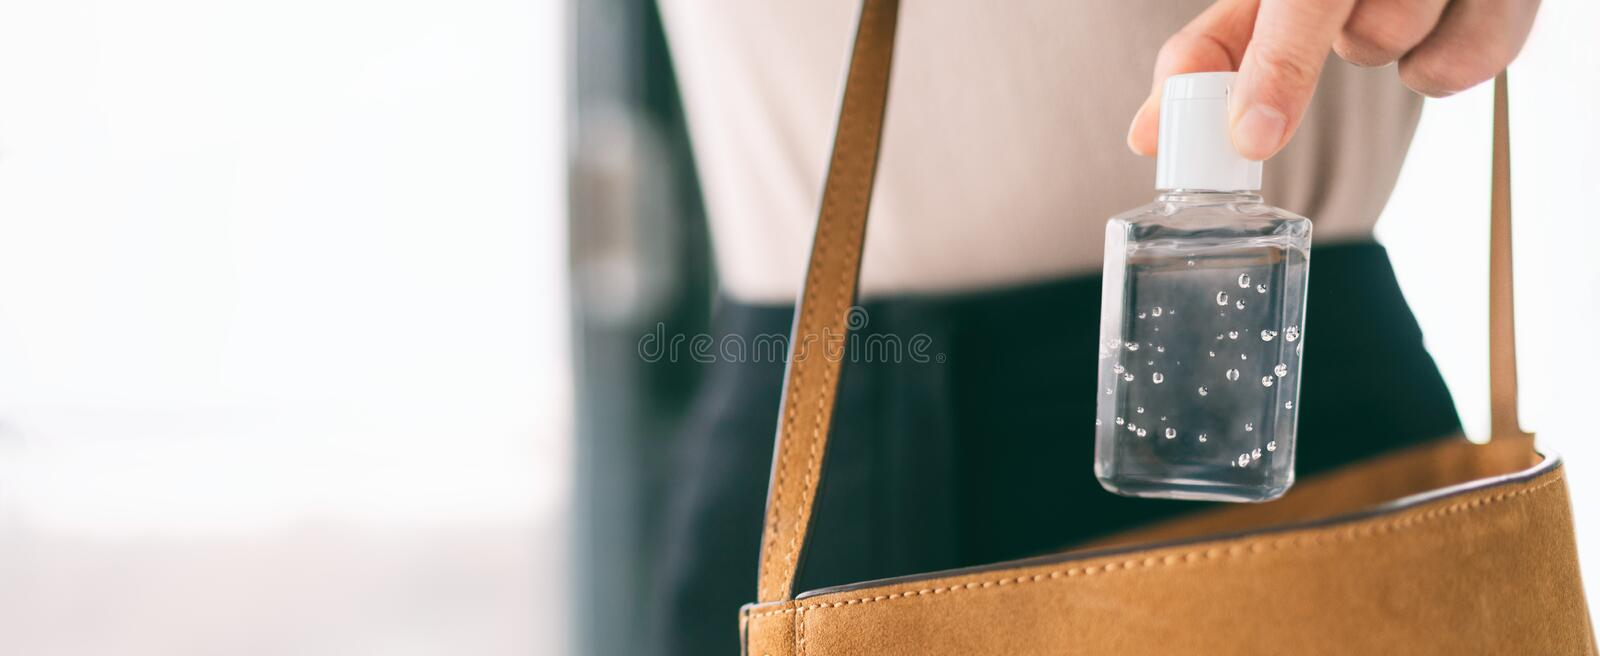 Hand sanitizer travel bottle woman carrying in purse COVID-19 prevention alcohol gel for cleaning hands while outside royalty free stock photo